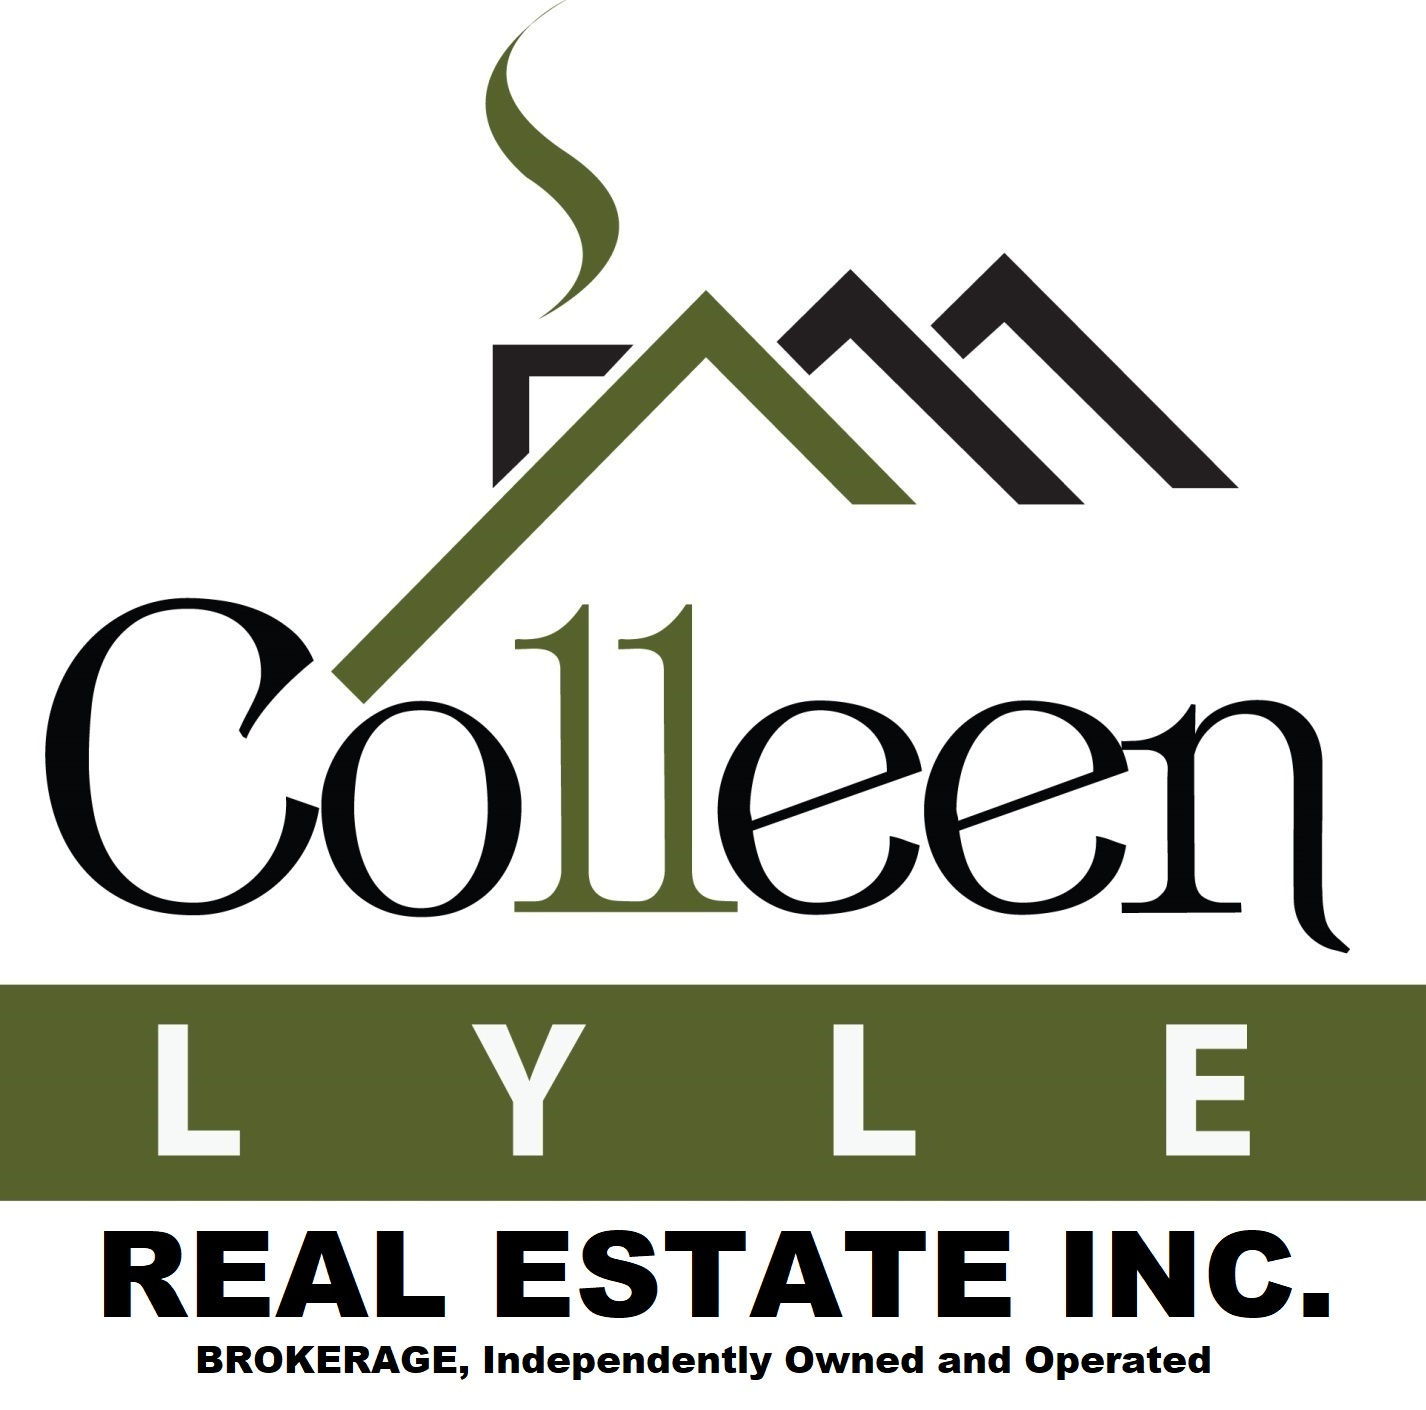 COLLEEN LYLE REAL ESTATE INC. Brokerage